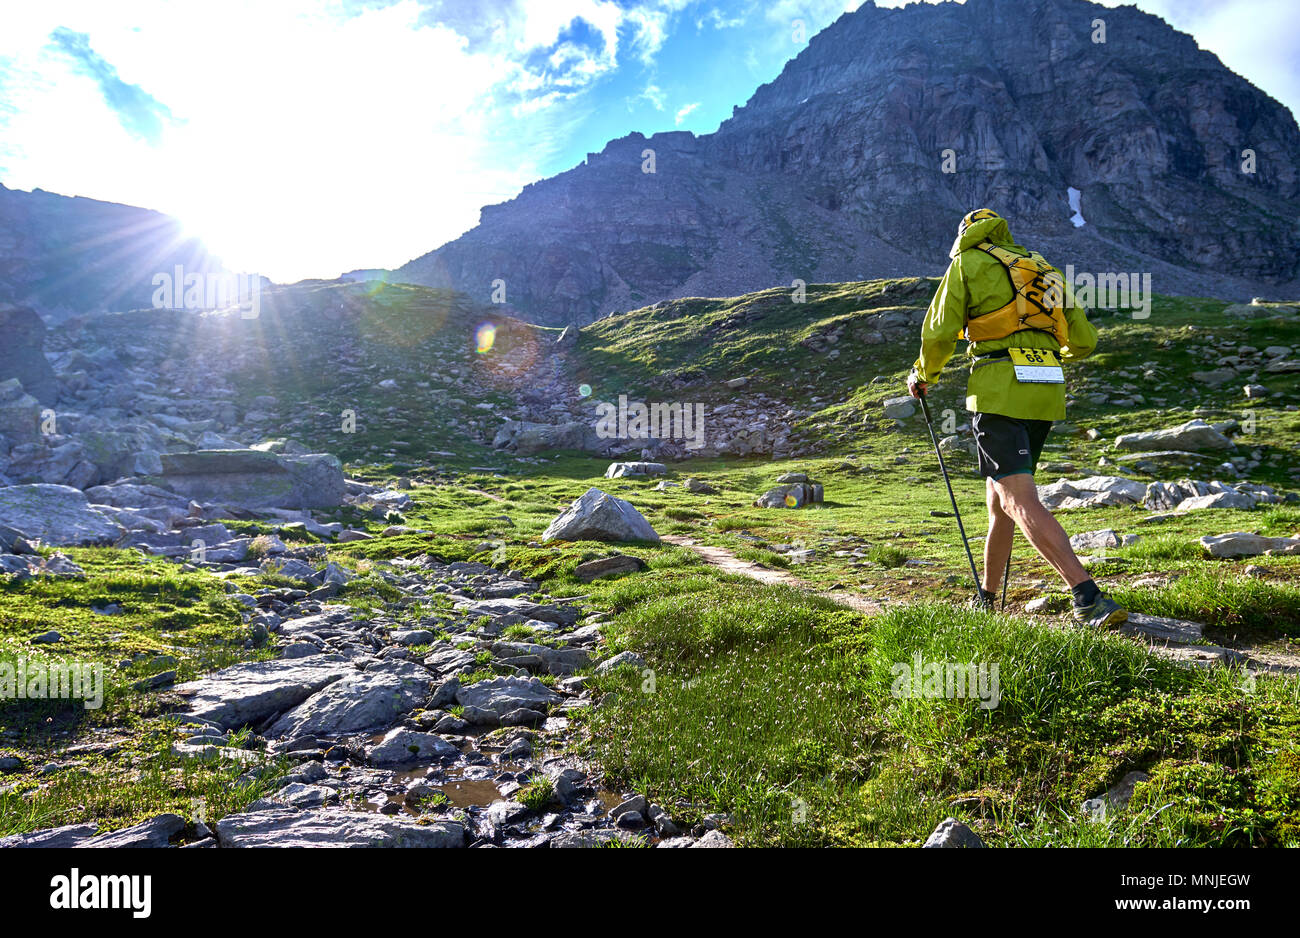 Vue arrière du trail runner walking up chemin de montagne escarpée, Alpe Devero, Verbania, Italie Photo Stock